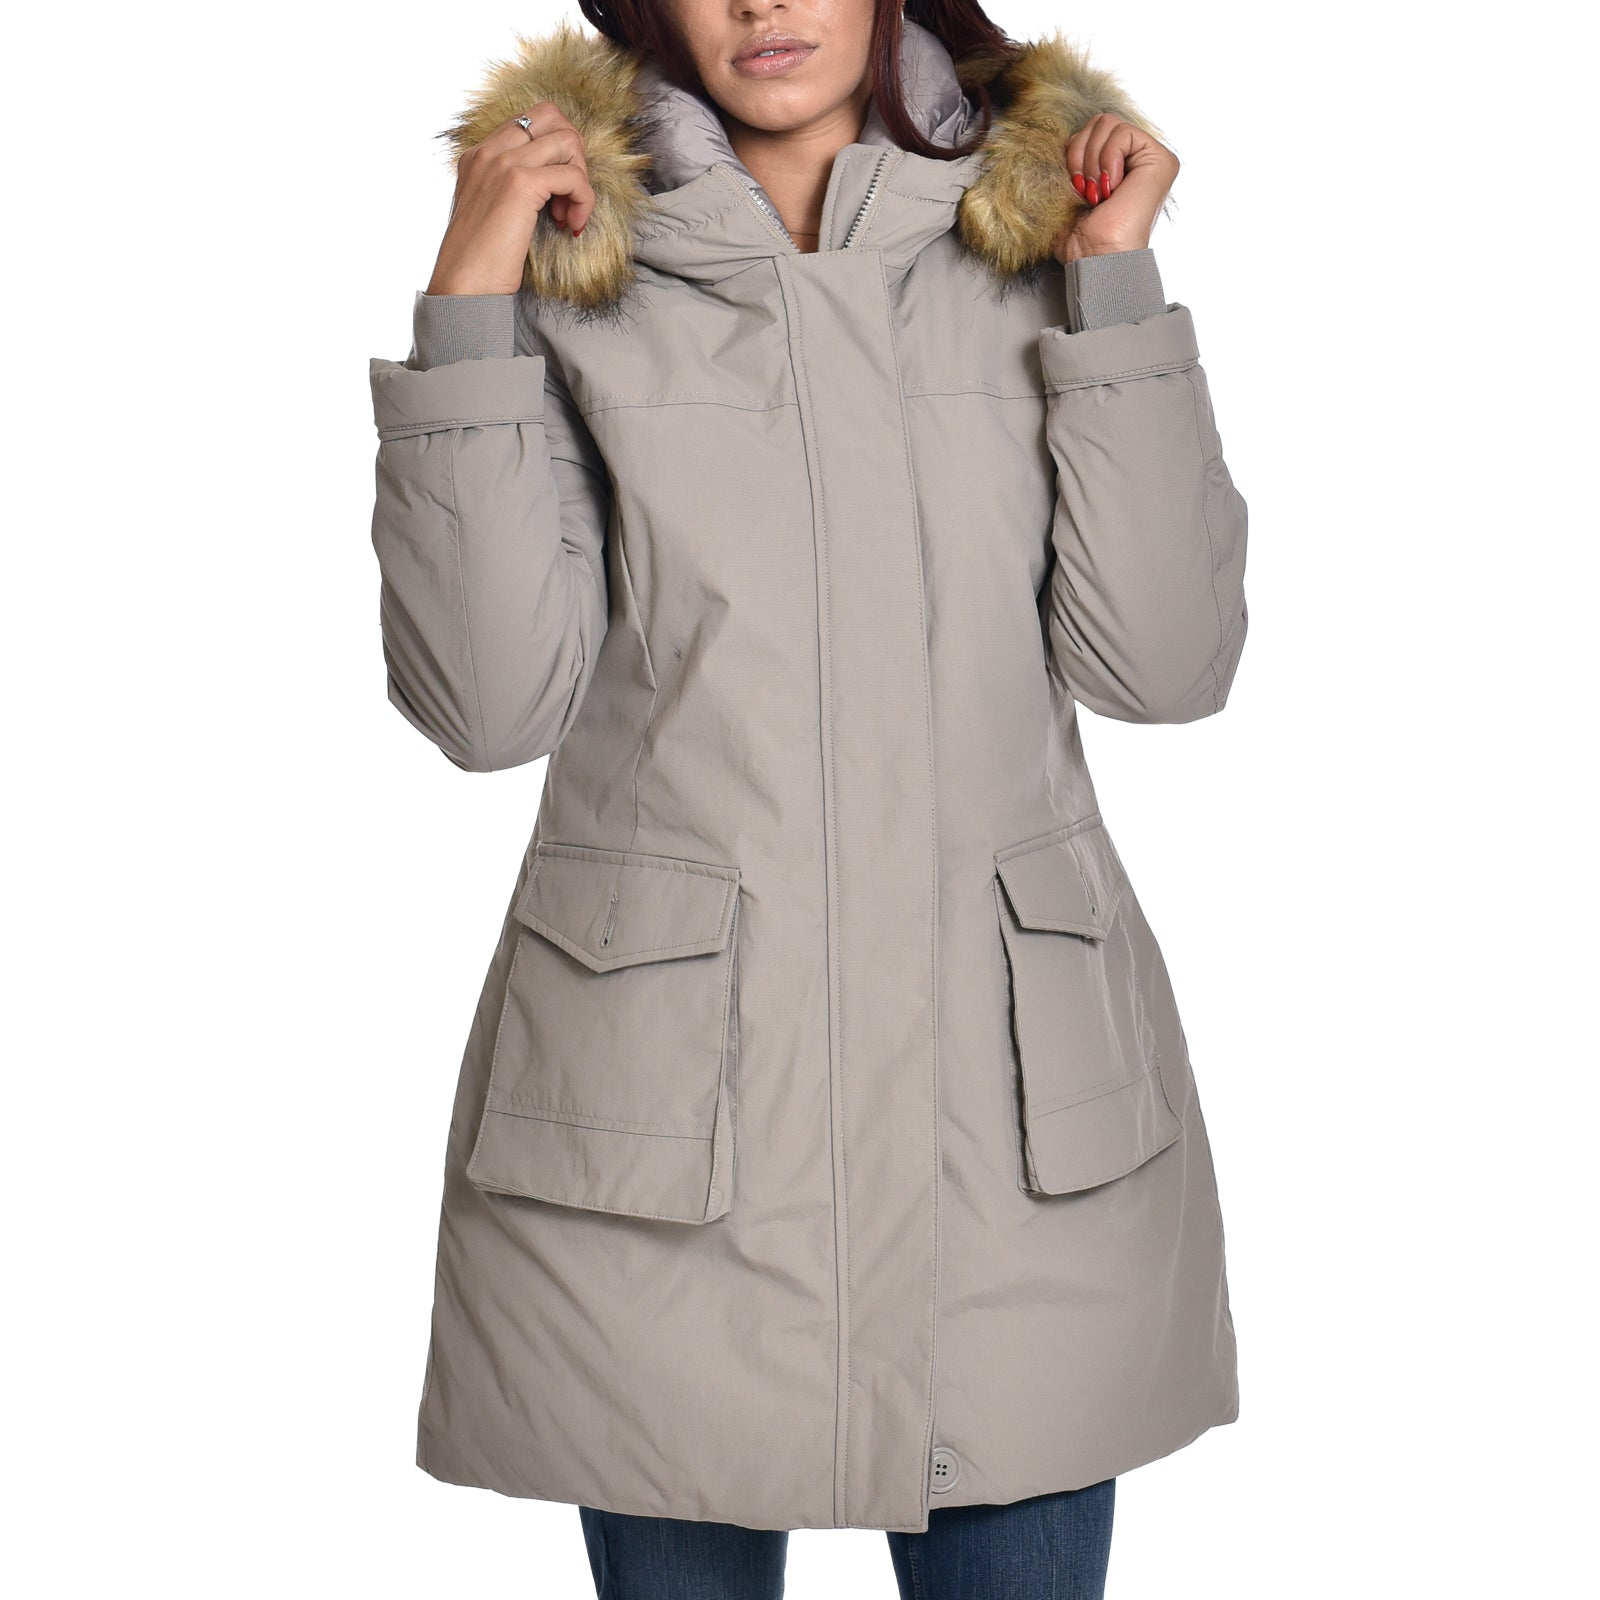 Parka Henry Cotton's Piumino Giubbotto Grigio  Button Pocket Donna